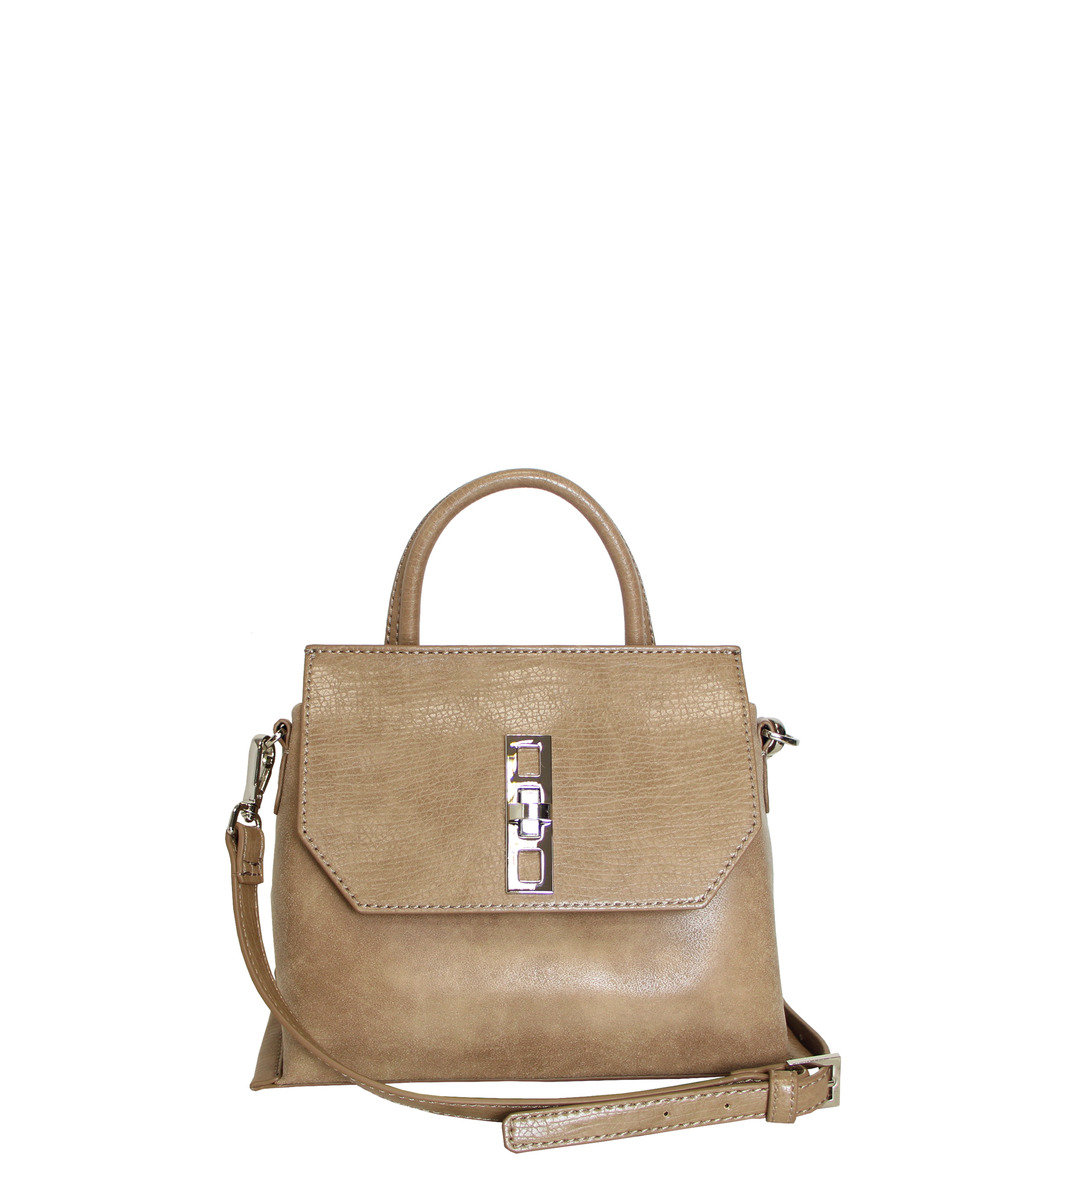 Suri Bag-Vegan Leather,Crossbody/Shoulder